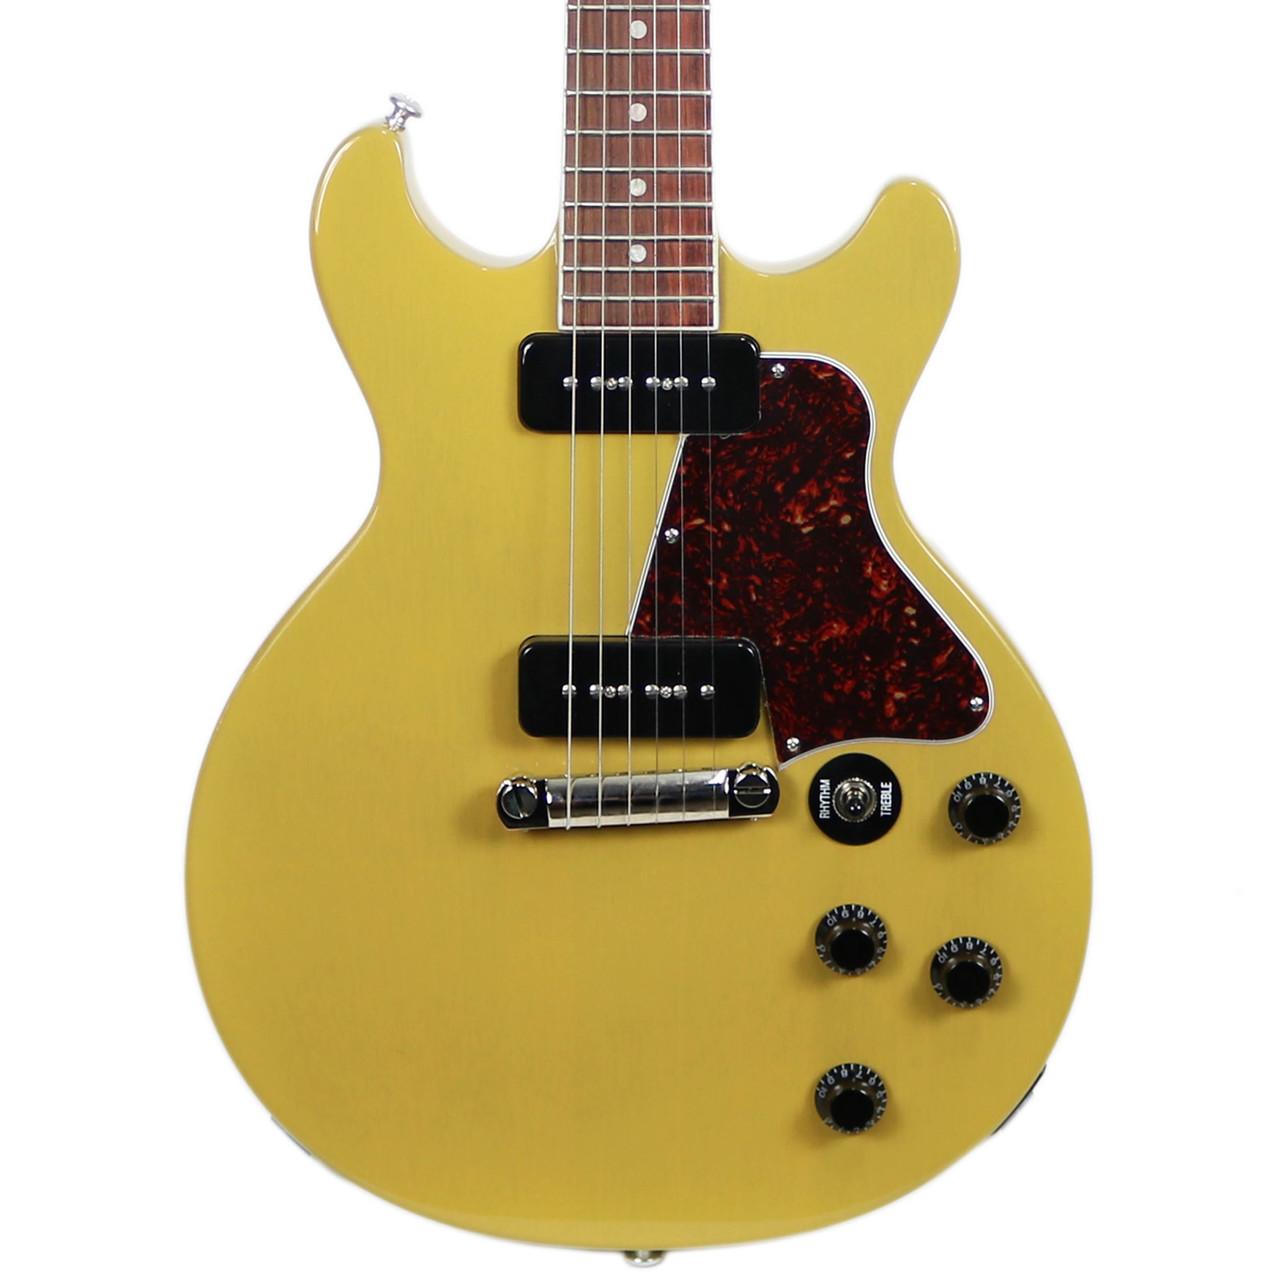 Used 2018 Gibson Les Paul Special Double Cutaway in TV Yellow